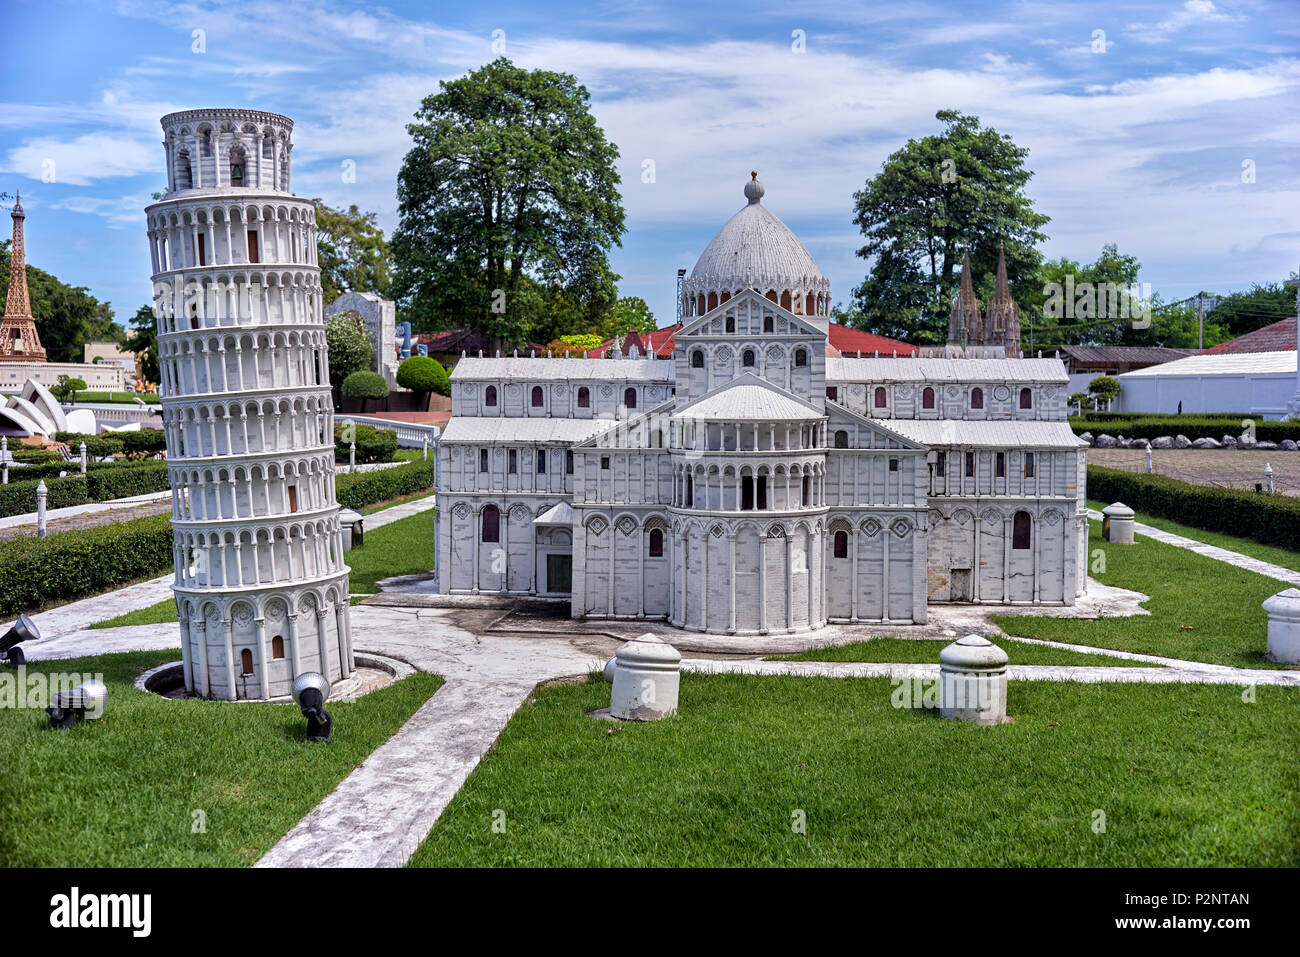 Leaning Tower of Pisa and Pisa cathedral.  Miniature scaled models of World iconic venues at Siam Mini World Pattaya Thailand. S. E. Asia. - Stock Image